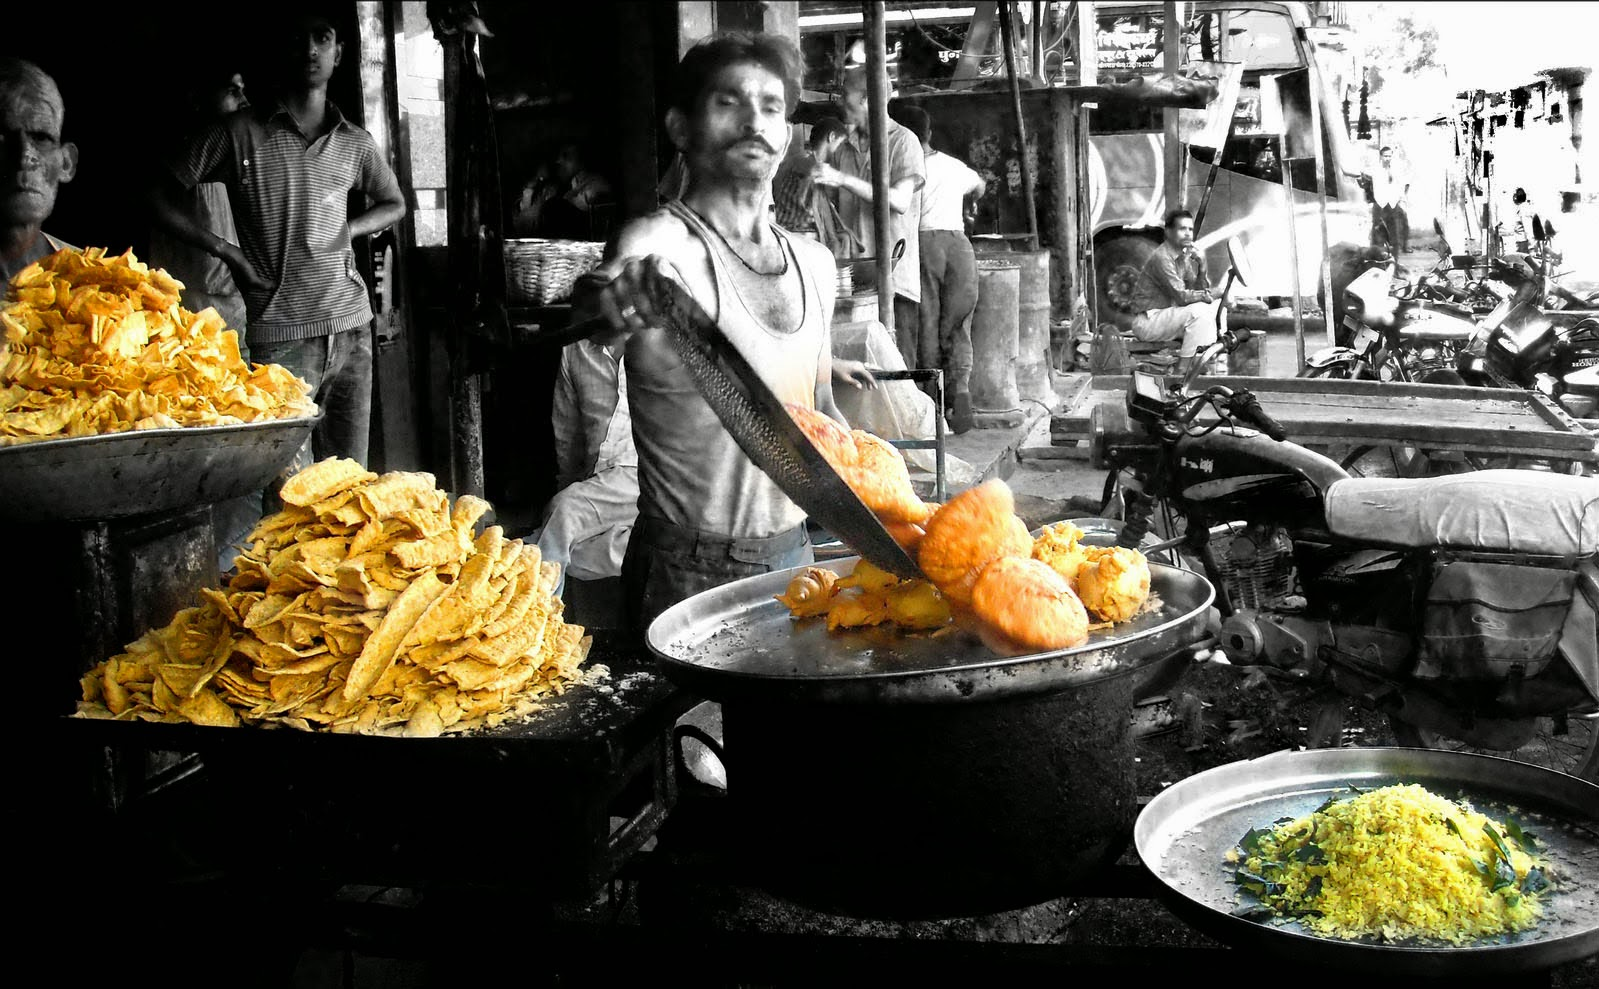 the indian cuisine dishes from the subcontinent of india and pakistan